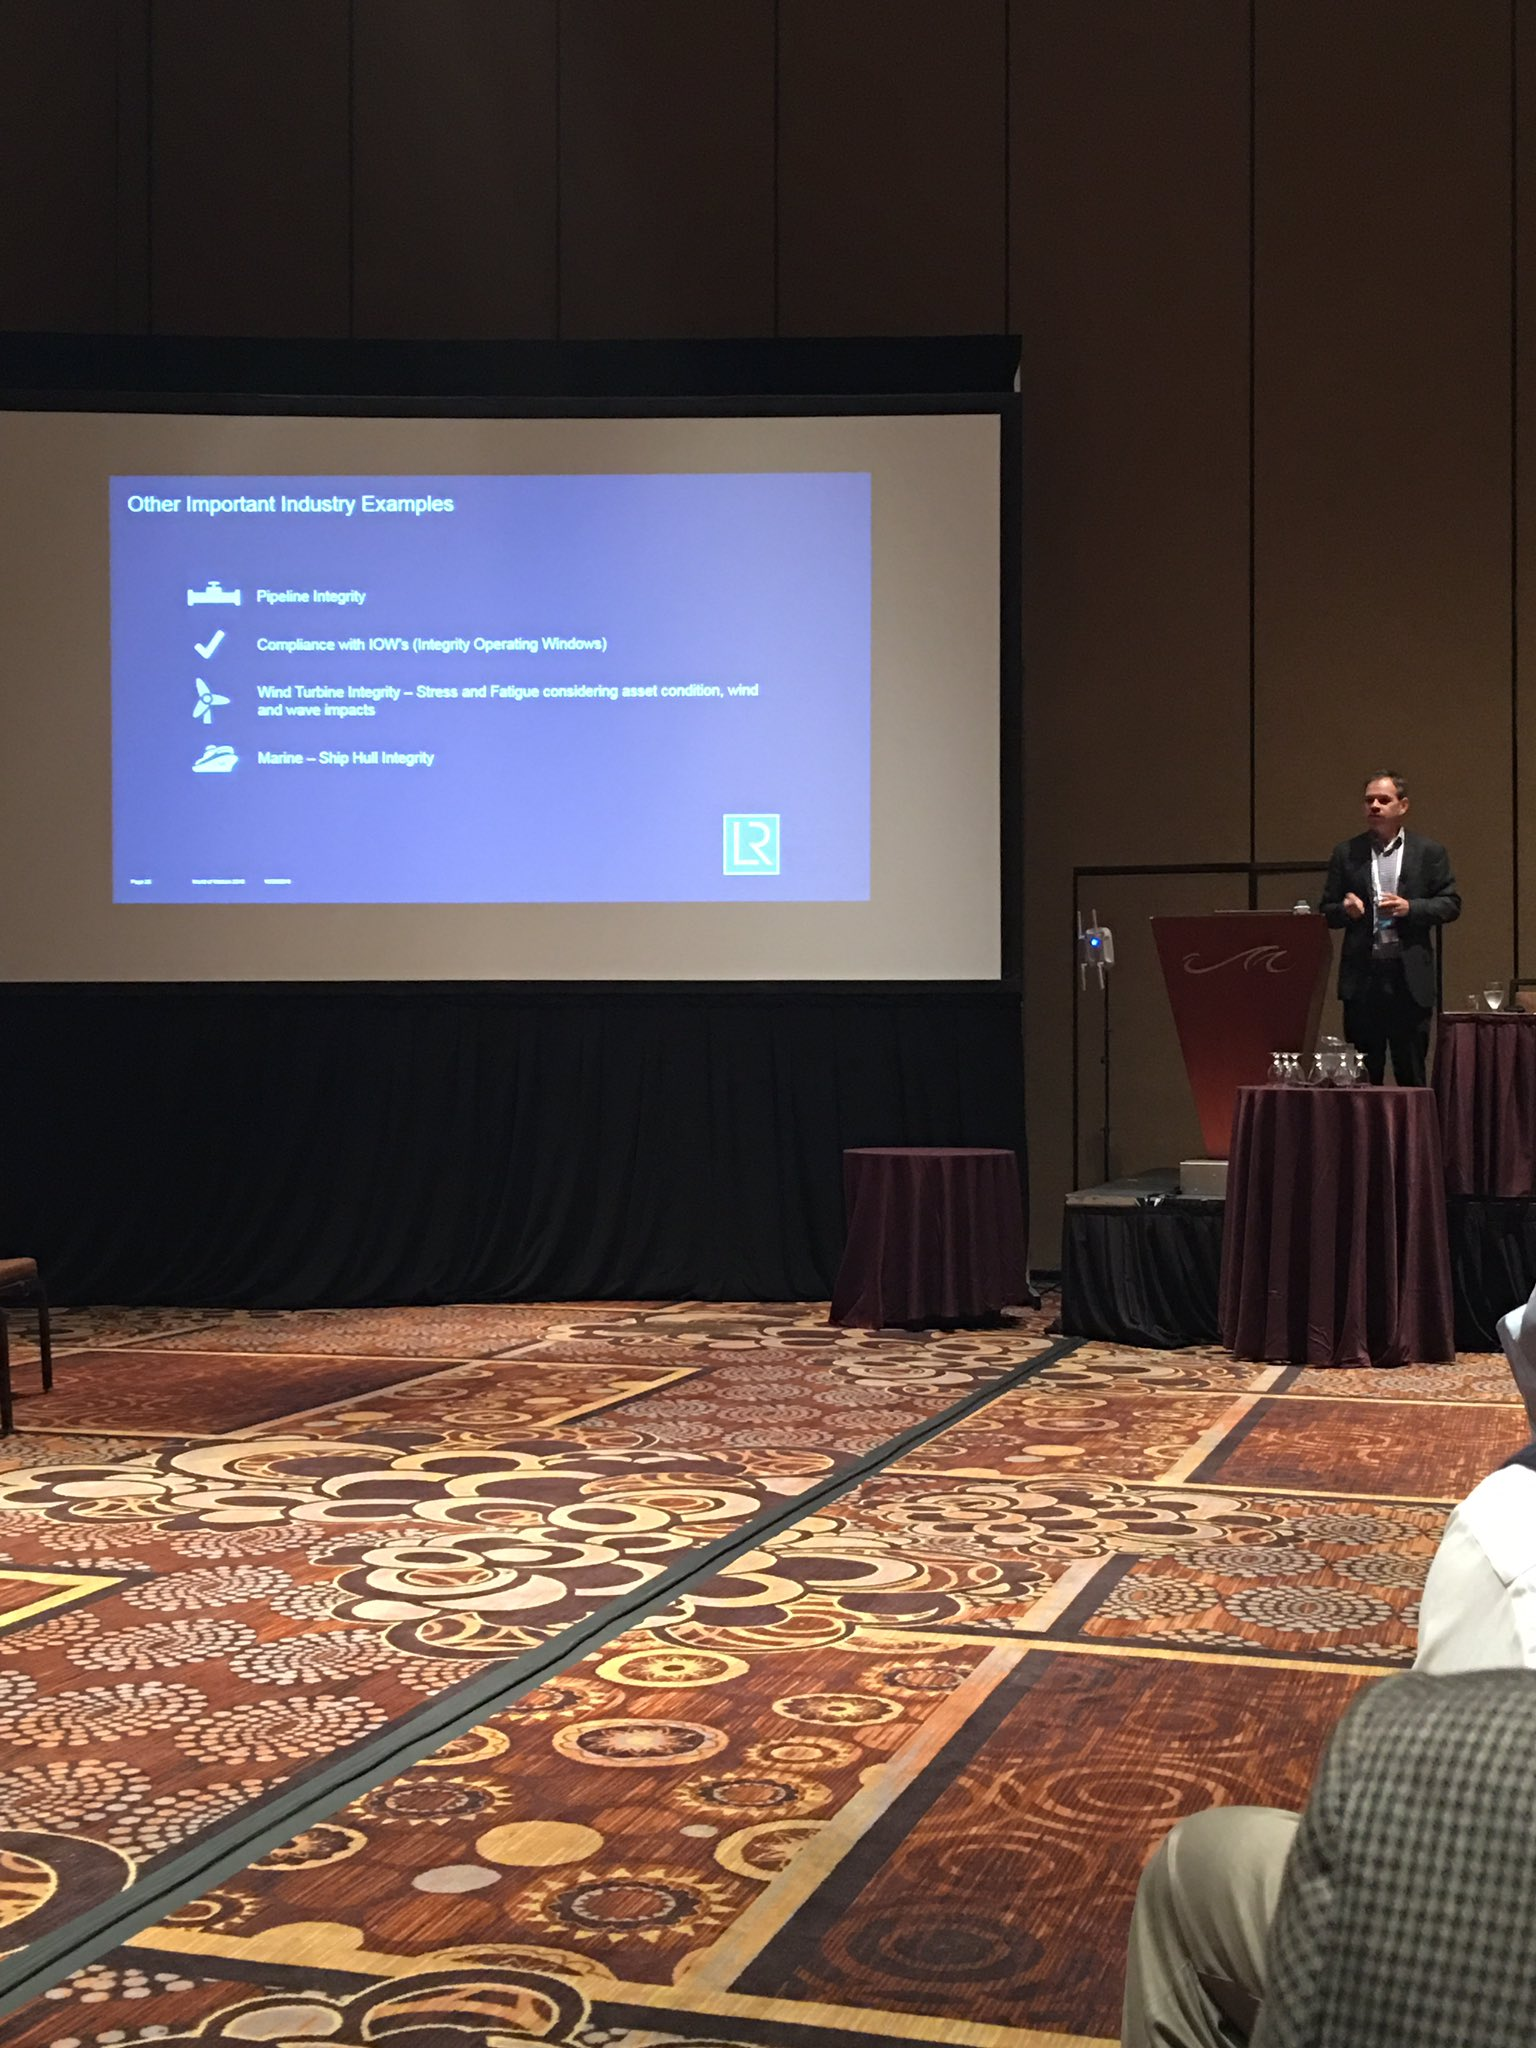 @JeffCBonnell shares how @lloydsregister predicts corrosion under insulation with #WatsonIoT . @ibmoilandgas #ibmwow https://t.co/oasRd201BO